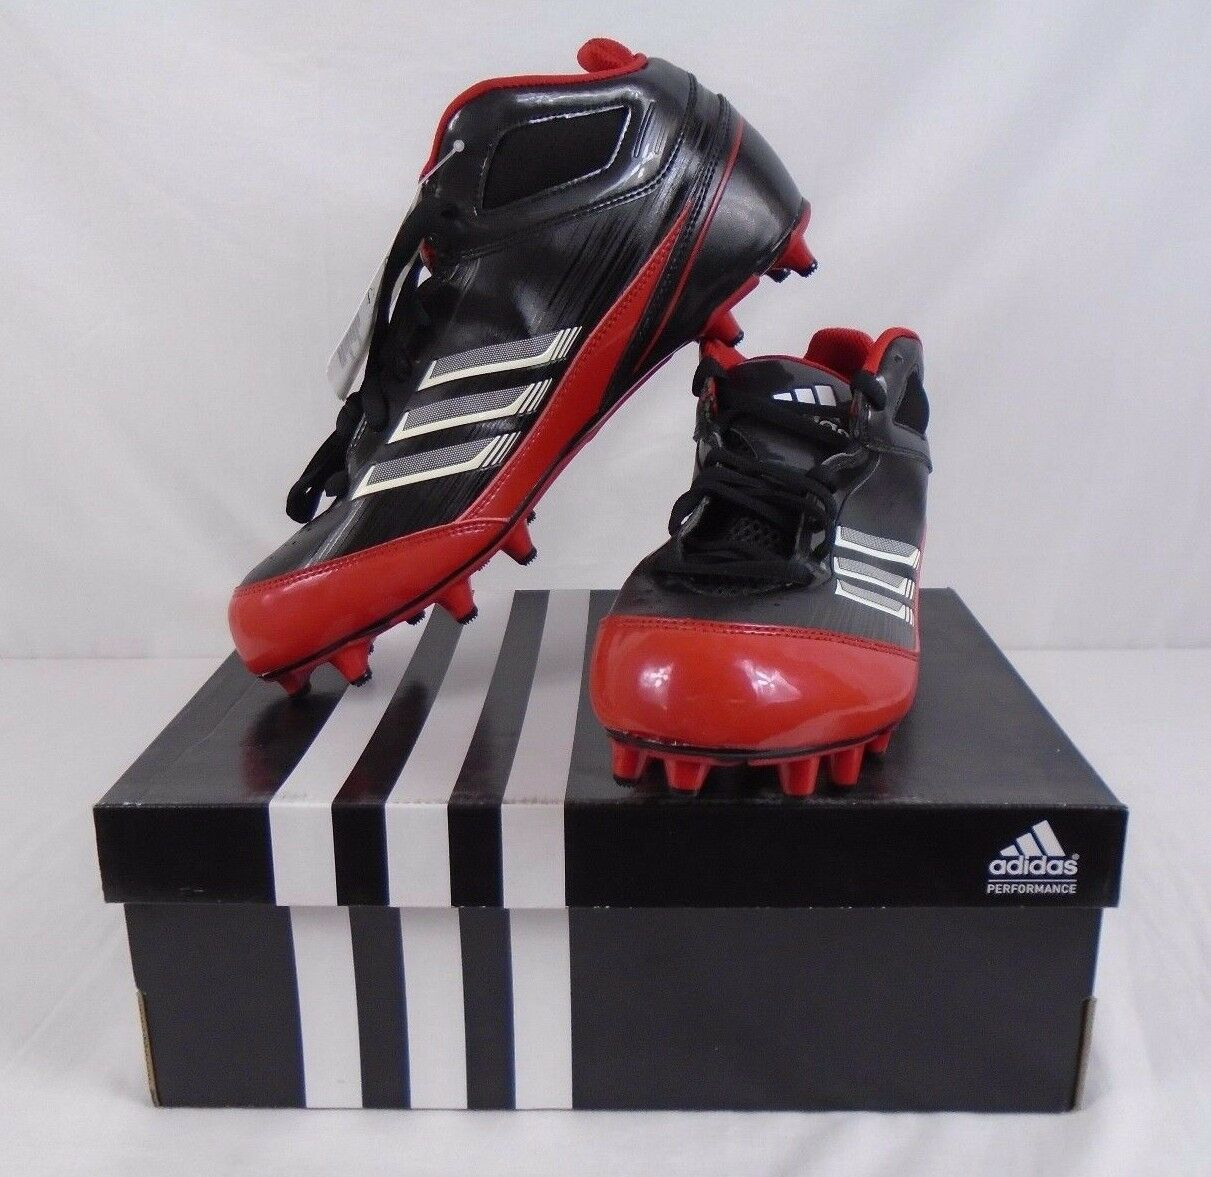 Adidas AS Cleats SMU Scorch X FLy Mid NC Men Football Cleats AS Sz 13.5 1100F 3736a9